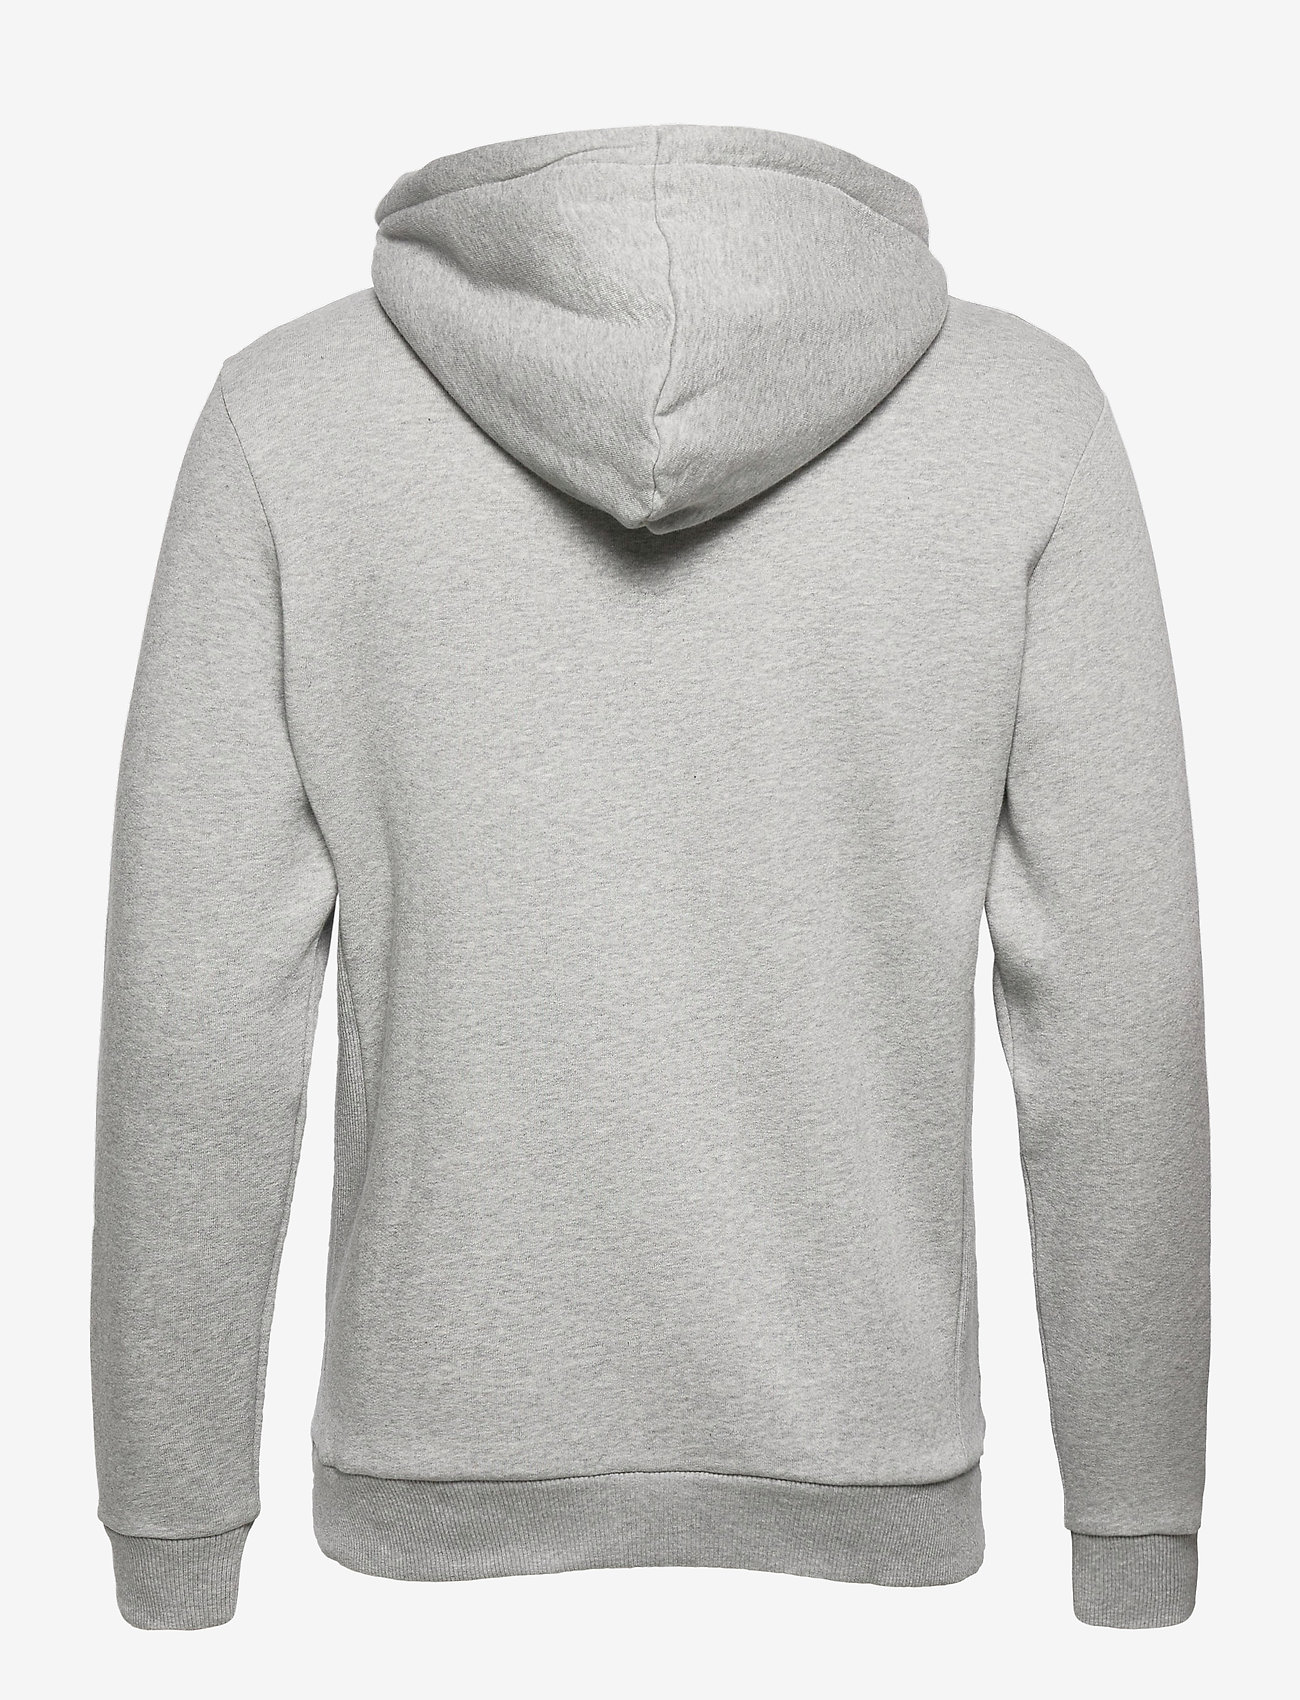 Les Deux - Clinton Zipper Hoodie - light grey melange/black - 1